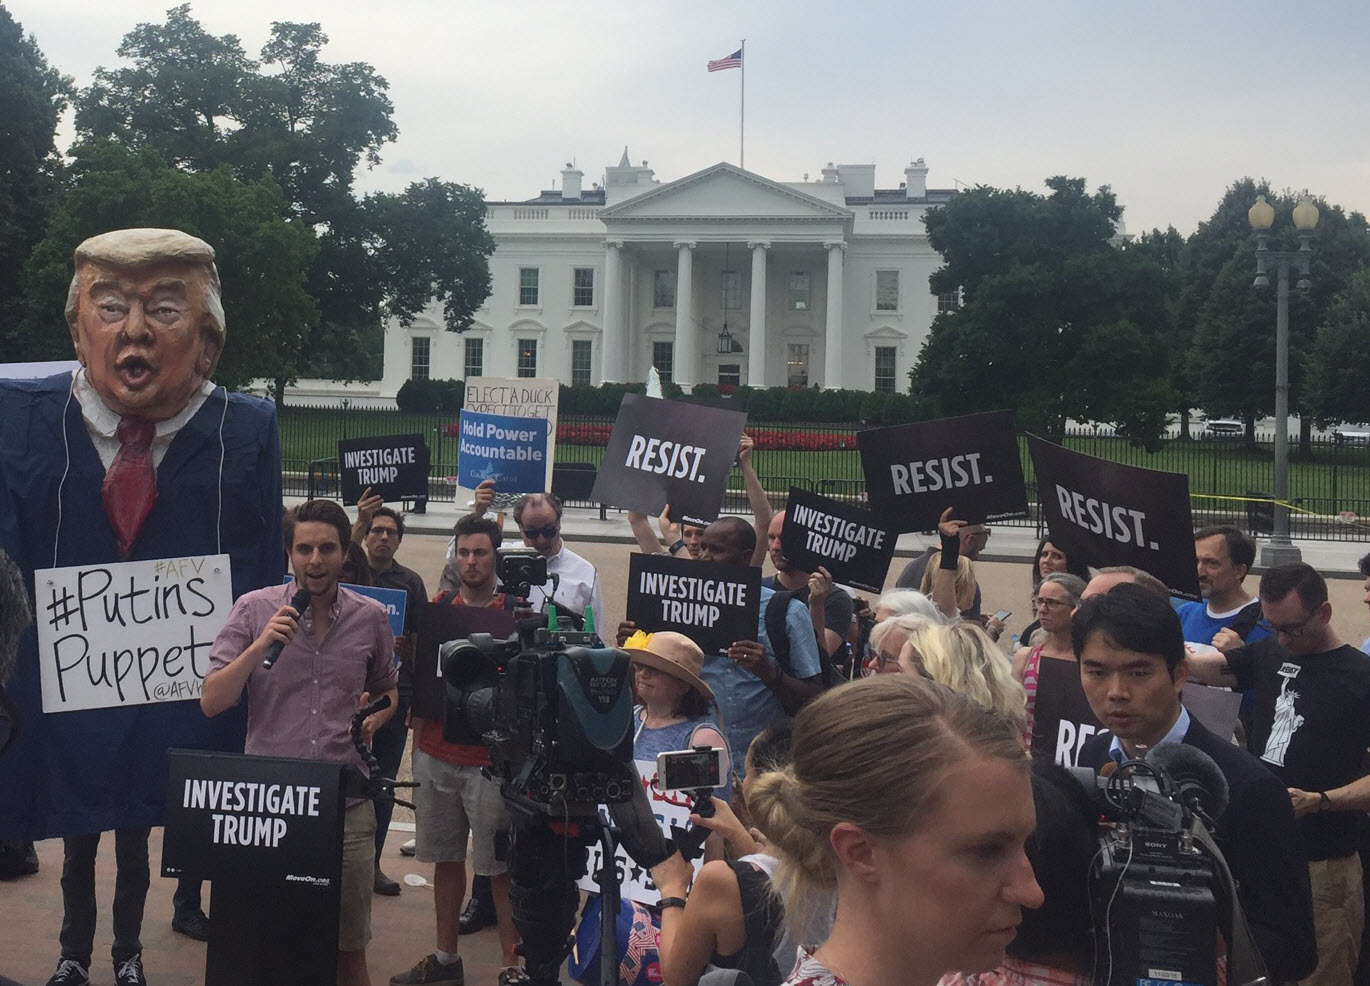 A protest outside of the White House following news that Donald Trump Jr. sought to collude with a Russian agent to undermine a political opponent.